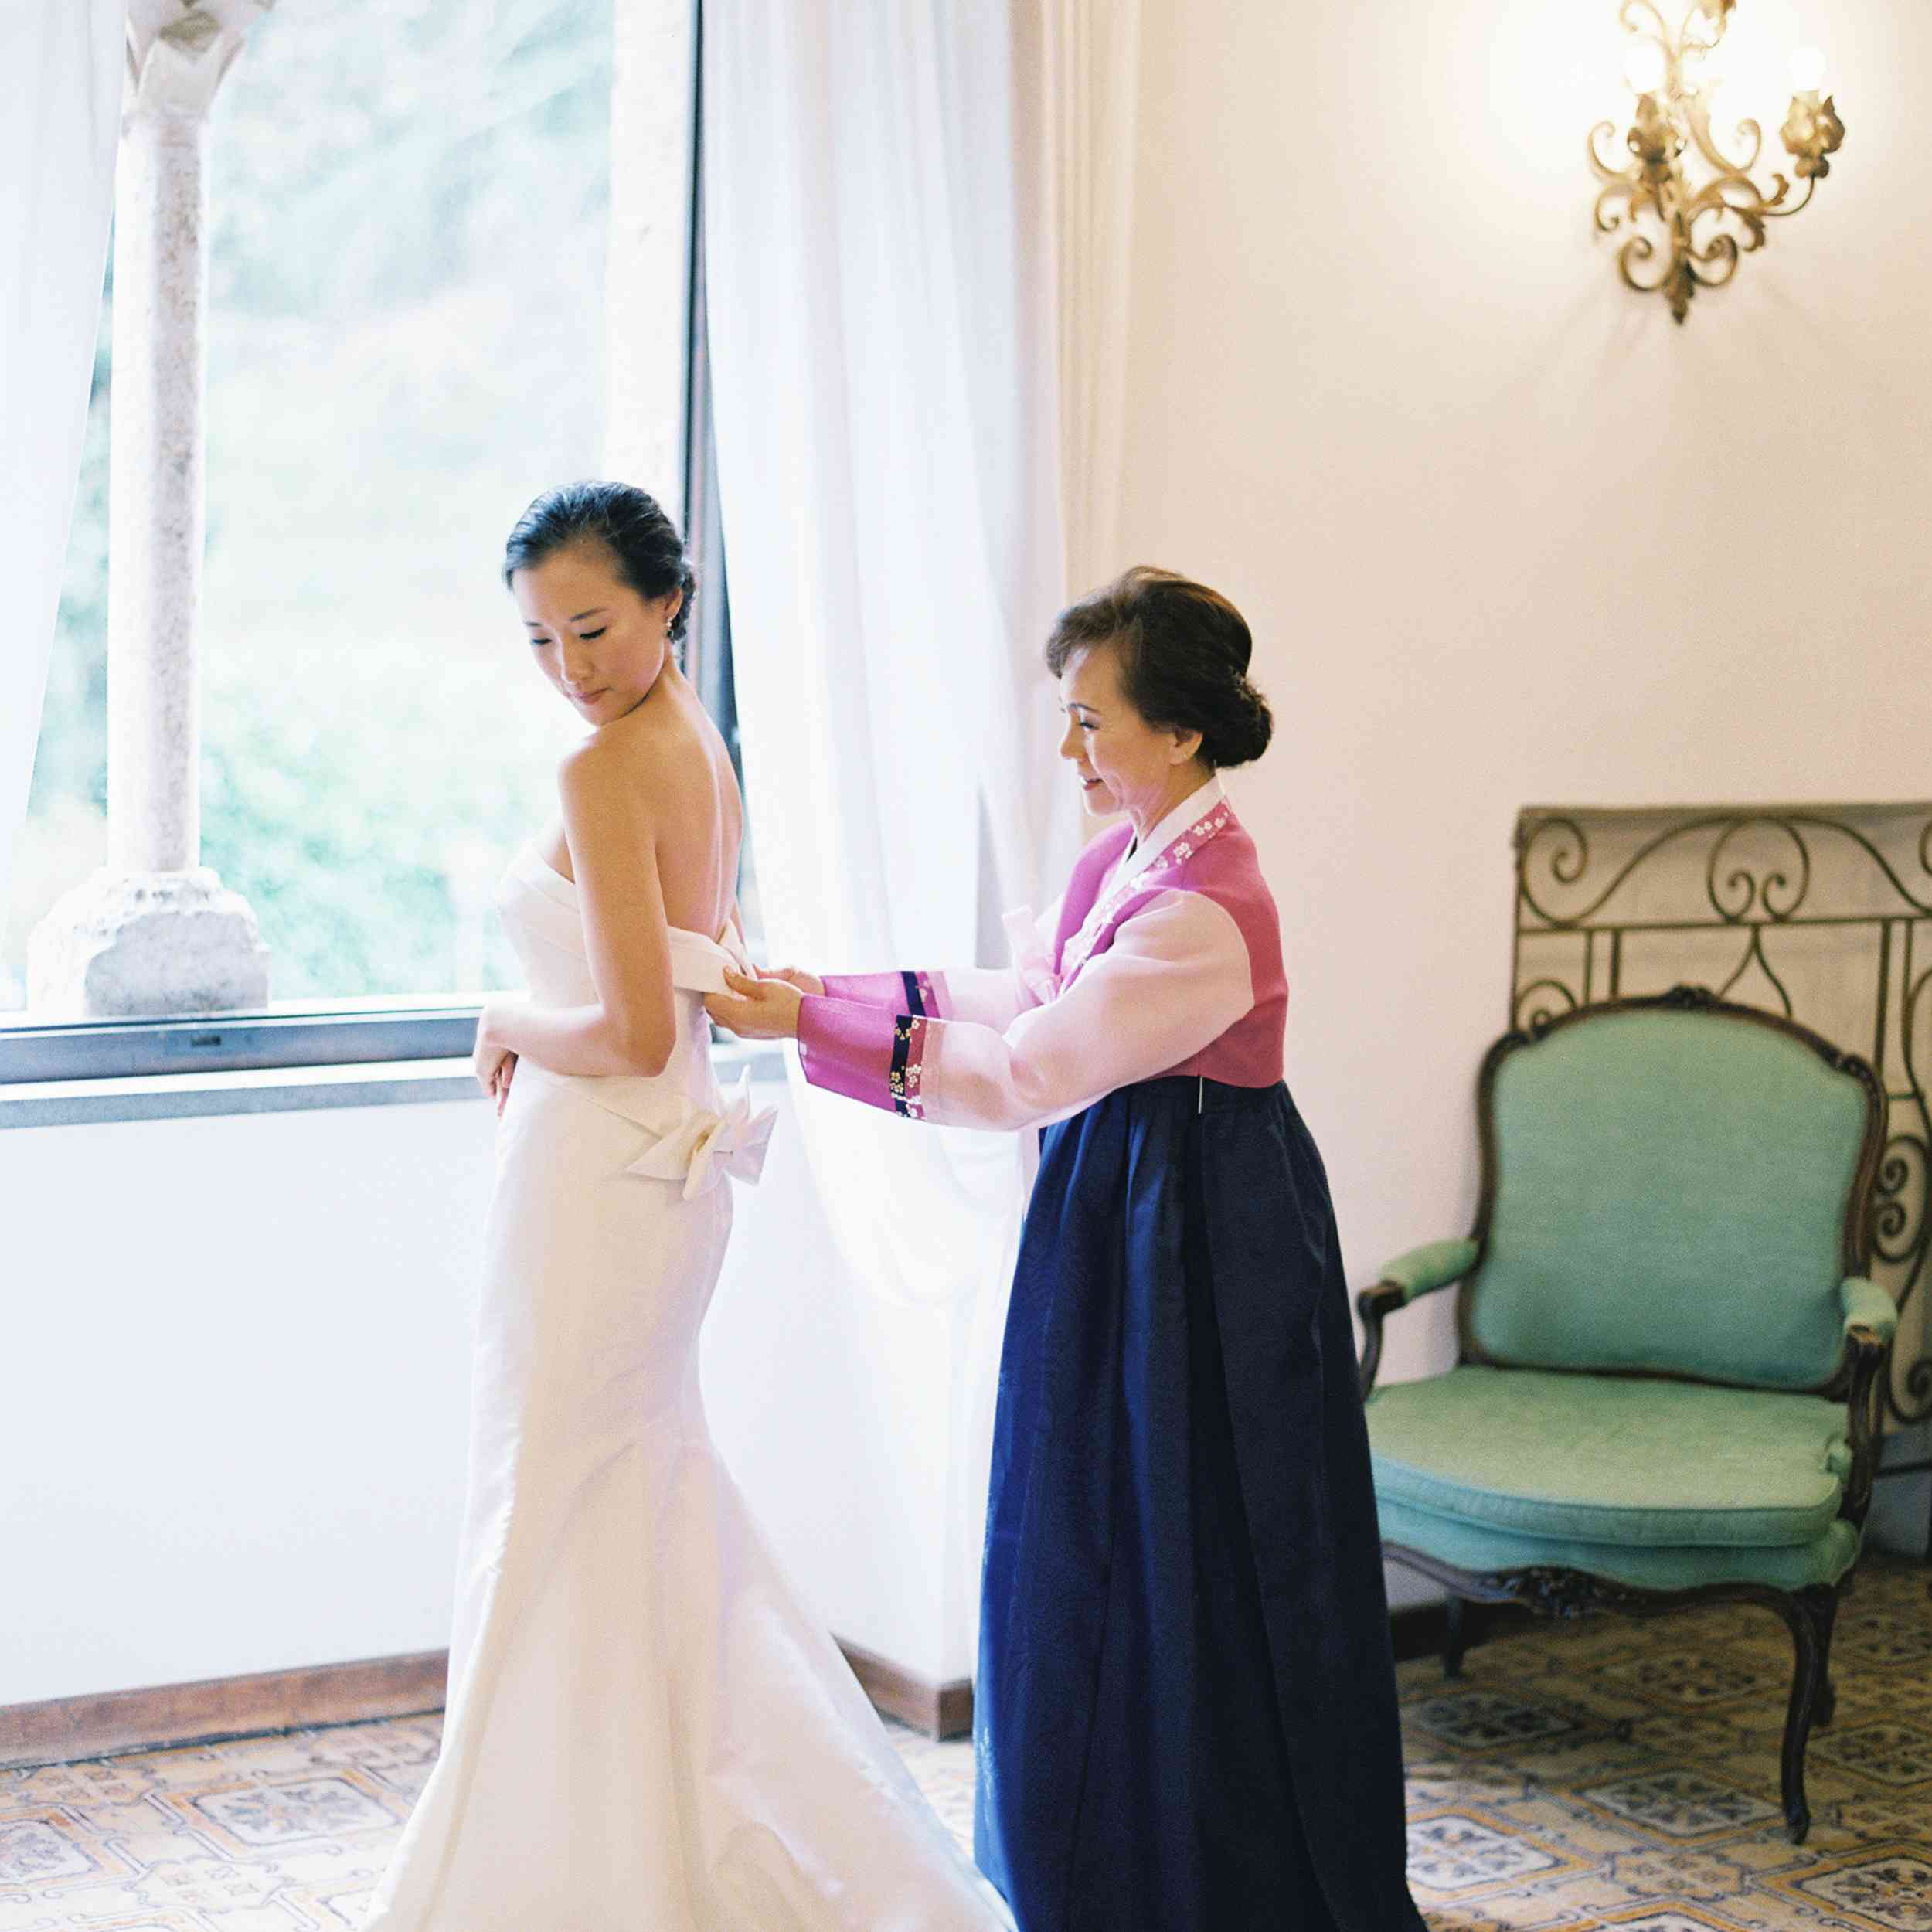 Mom in traditional dress zipping bride into wedding gown